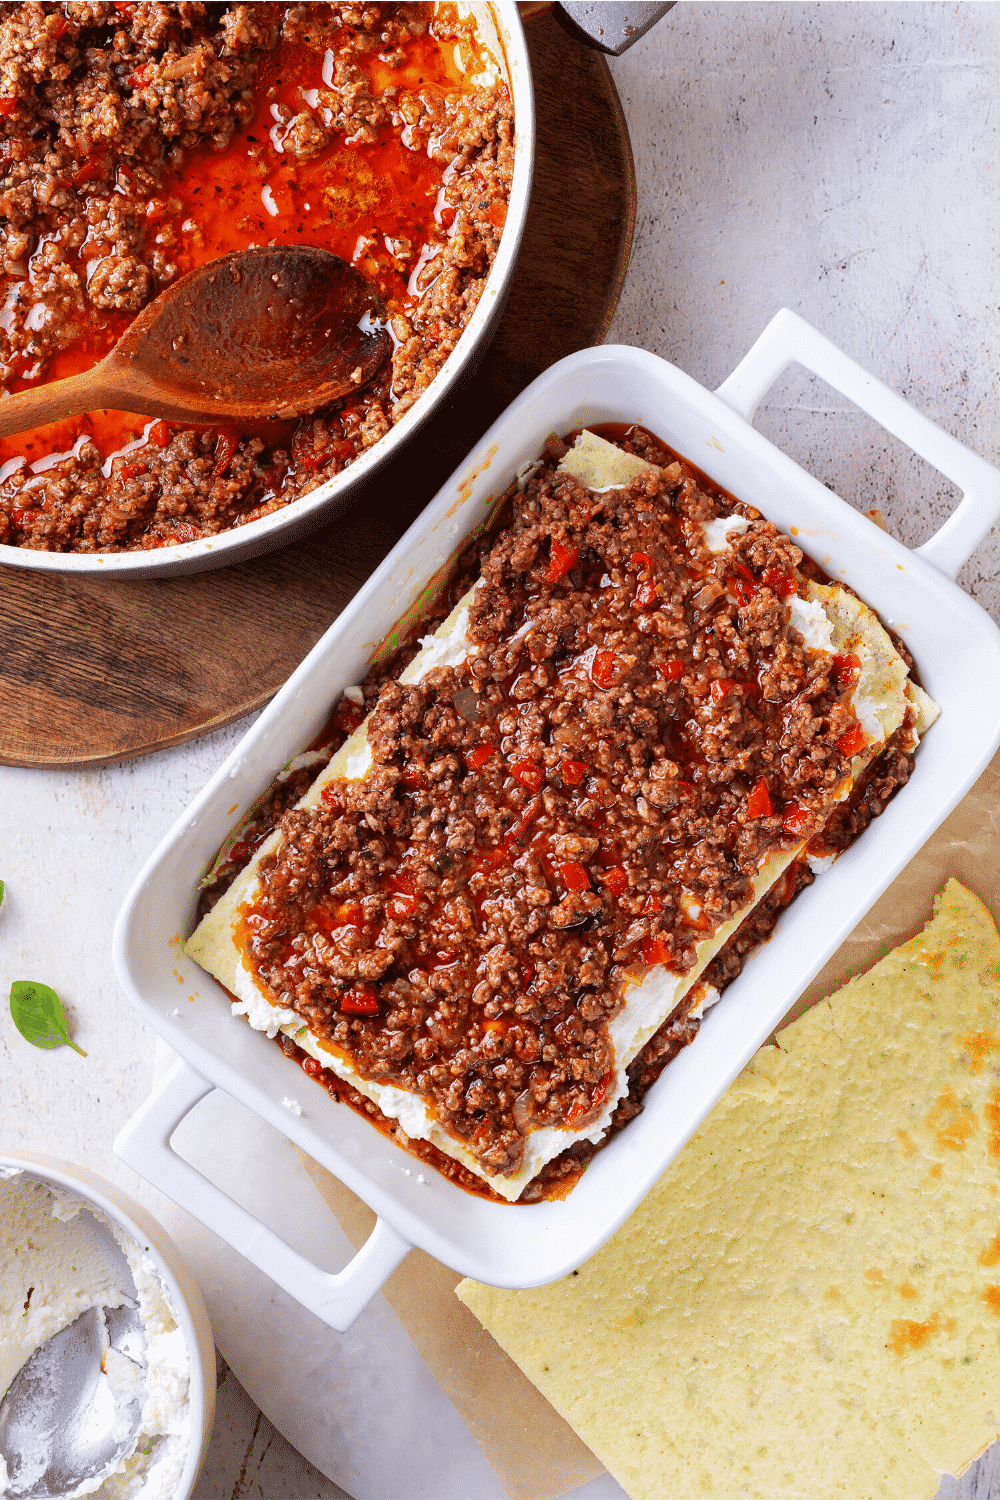 A baking dish filled with a layer of lasagna noodles and a meat sauce on the top. To the right of the dish is another lasagna noodle sheet and behind the dish is a bowl of meat sauce.